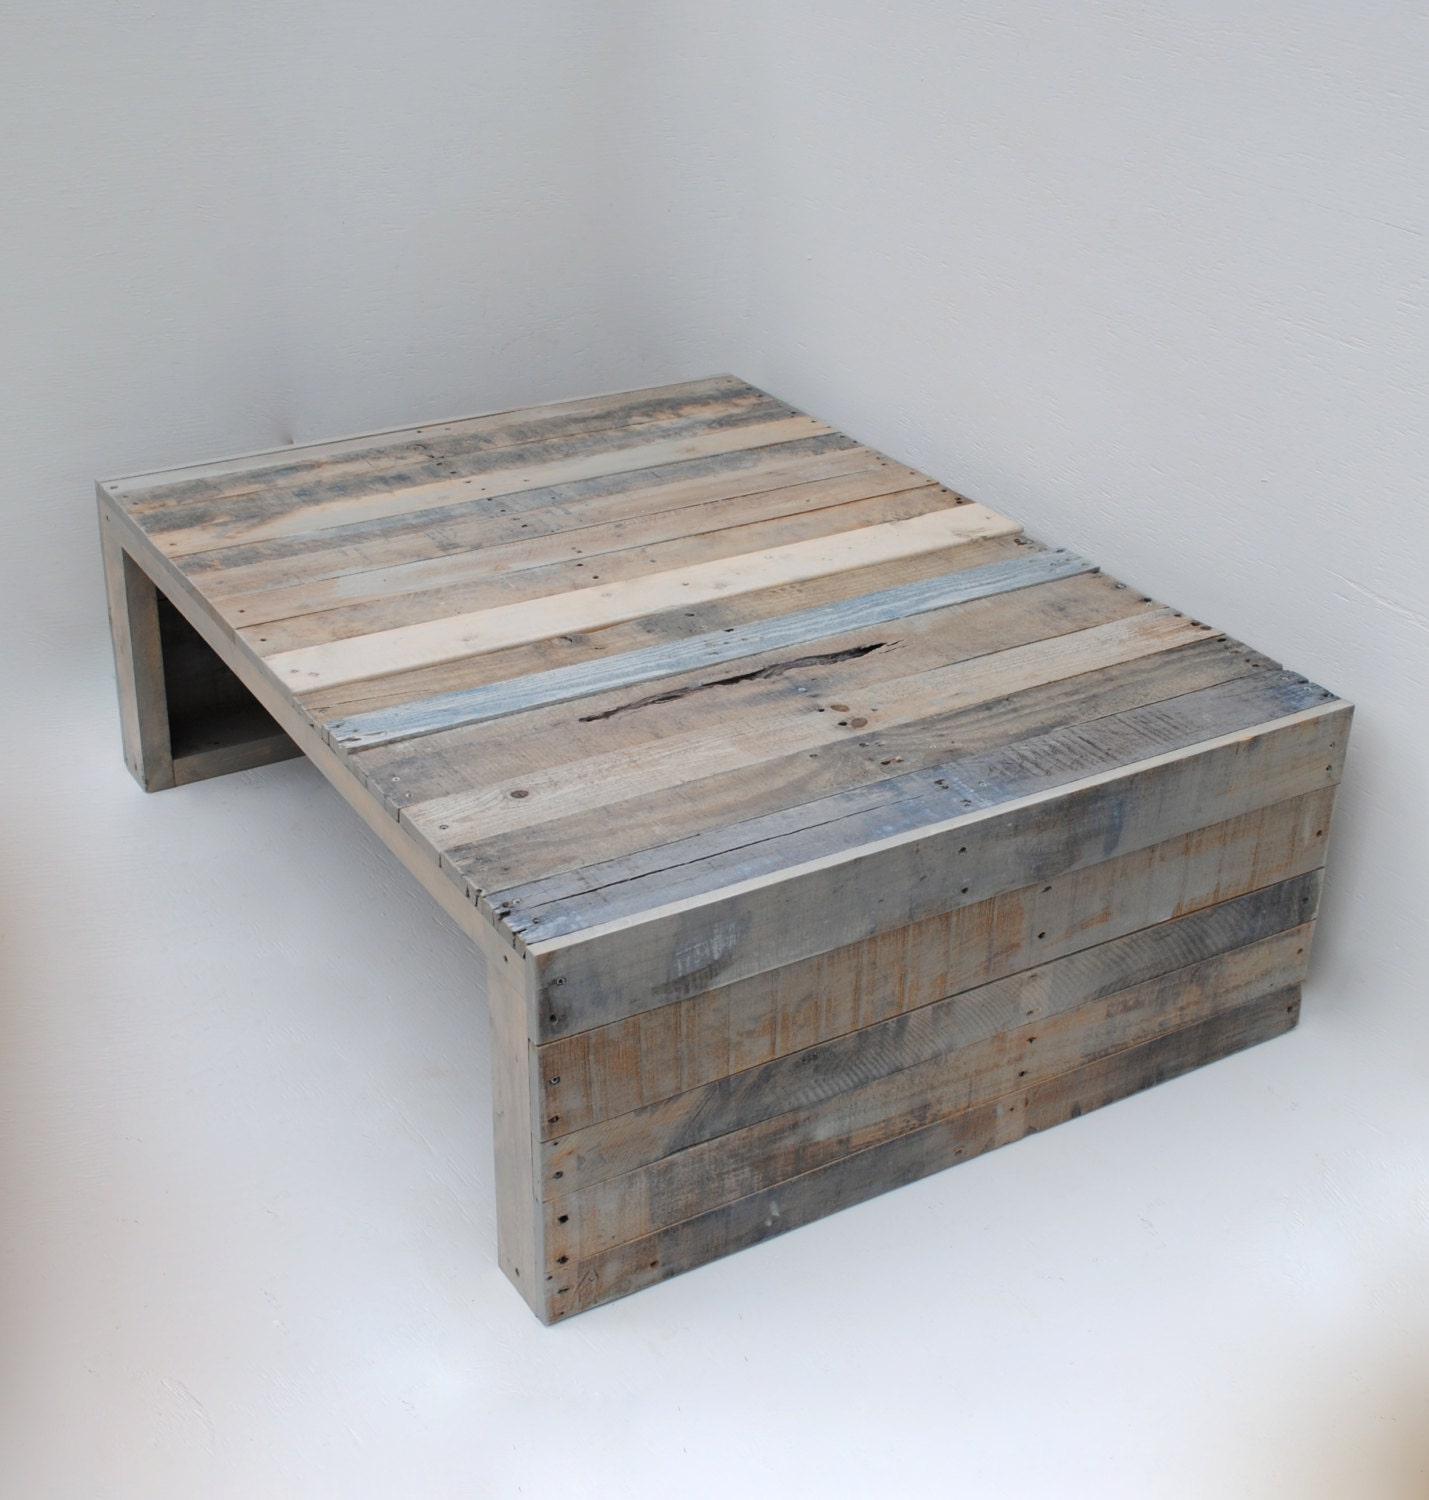 Modern grey reclaimed pallet coffee table by rakamod on etsy for Gray wood and metal coffee table